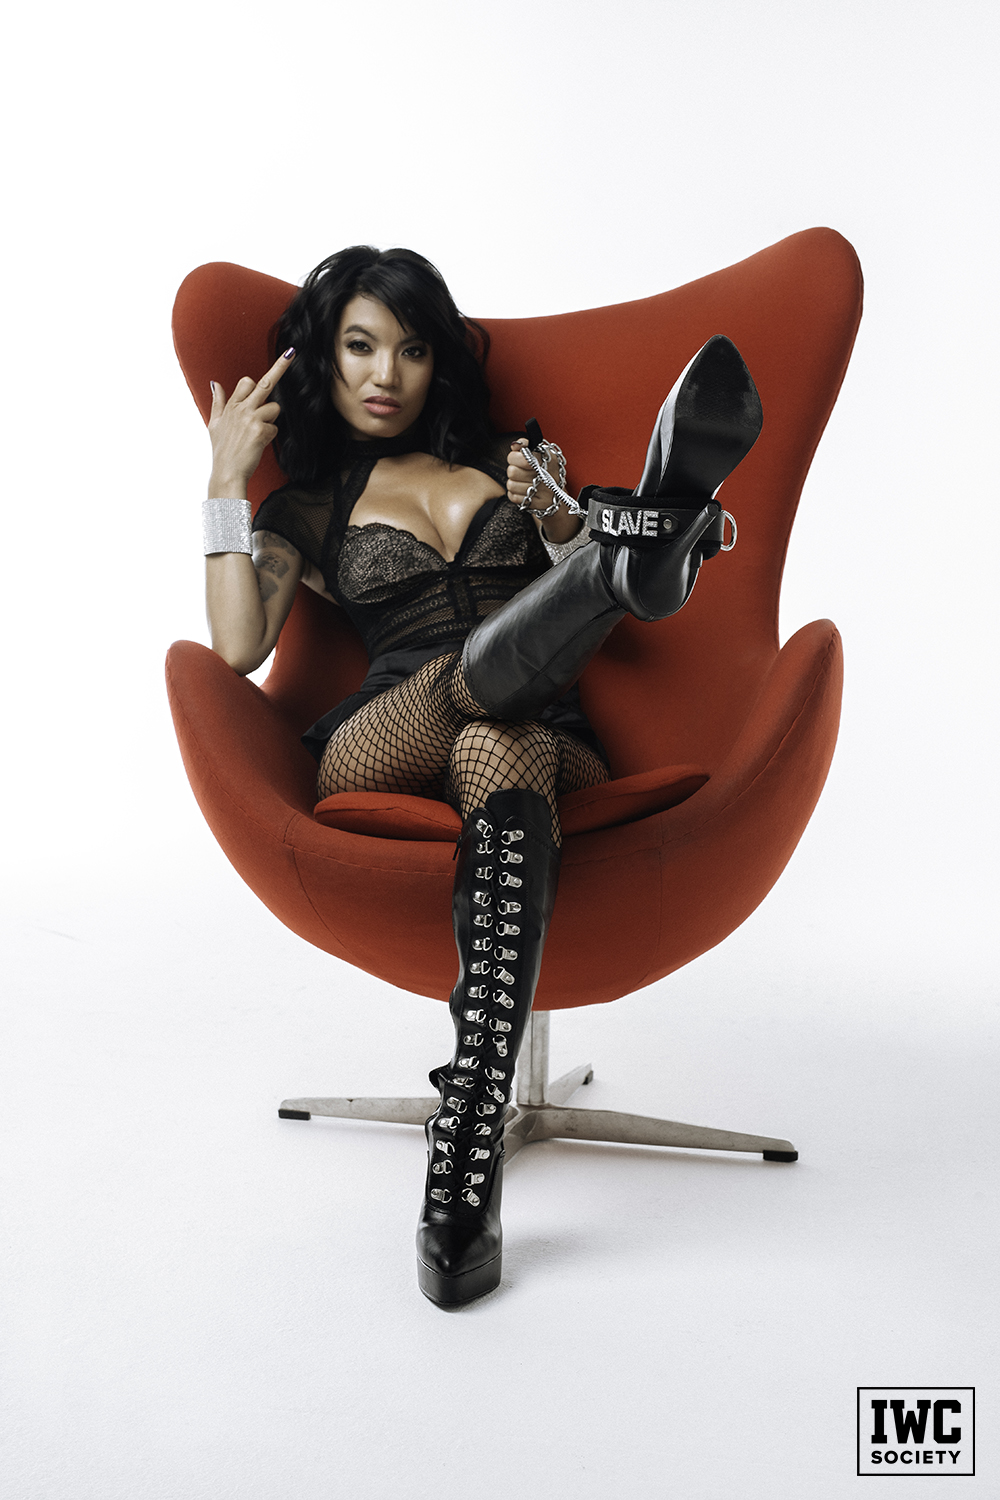 Goddess Asia Perez asian domme wearing black lingerie sitting in a red chair giving the middle finger